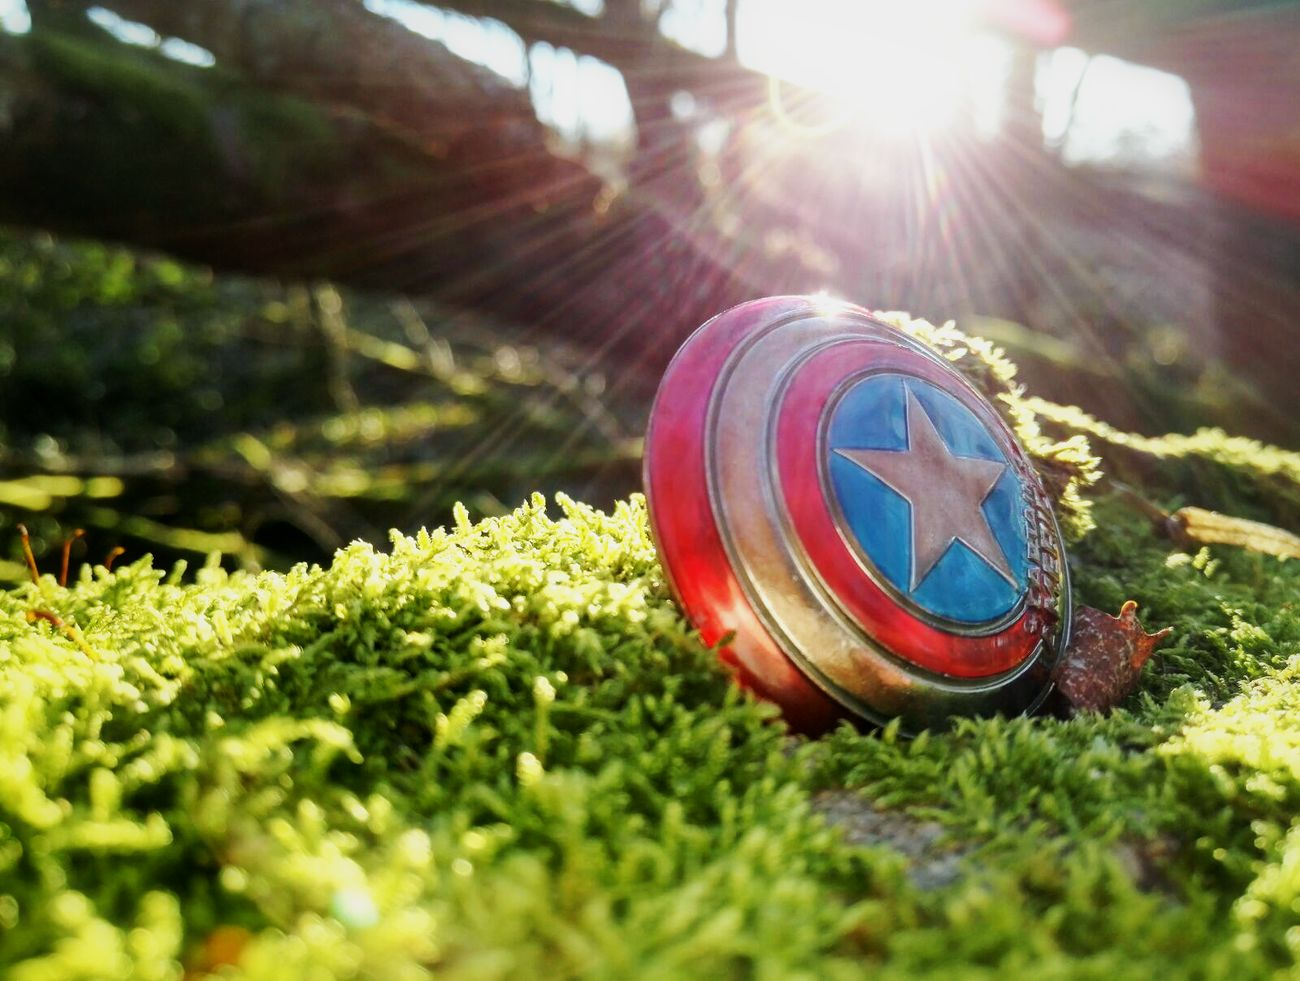 Fallen at war Green Color Sunlight Nature No People Grass Plant Tree Captainamerica Avengers HERO American Shield French France Best EyeEm Shot Macro Getting Inspired The KIOMI Collection Getting Creative Soldier Outdoors Symbol Beauty In Nature Inspired